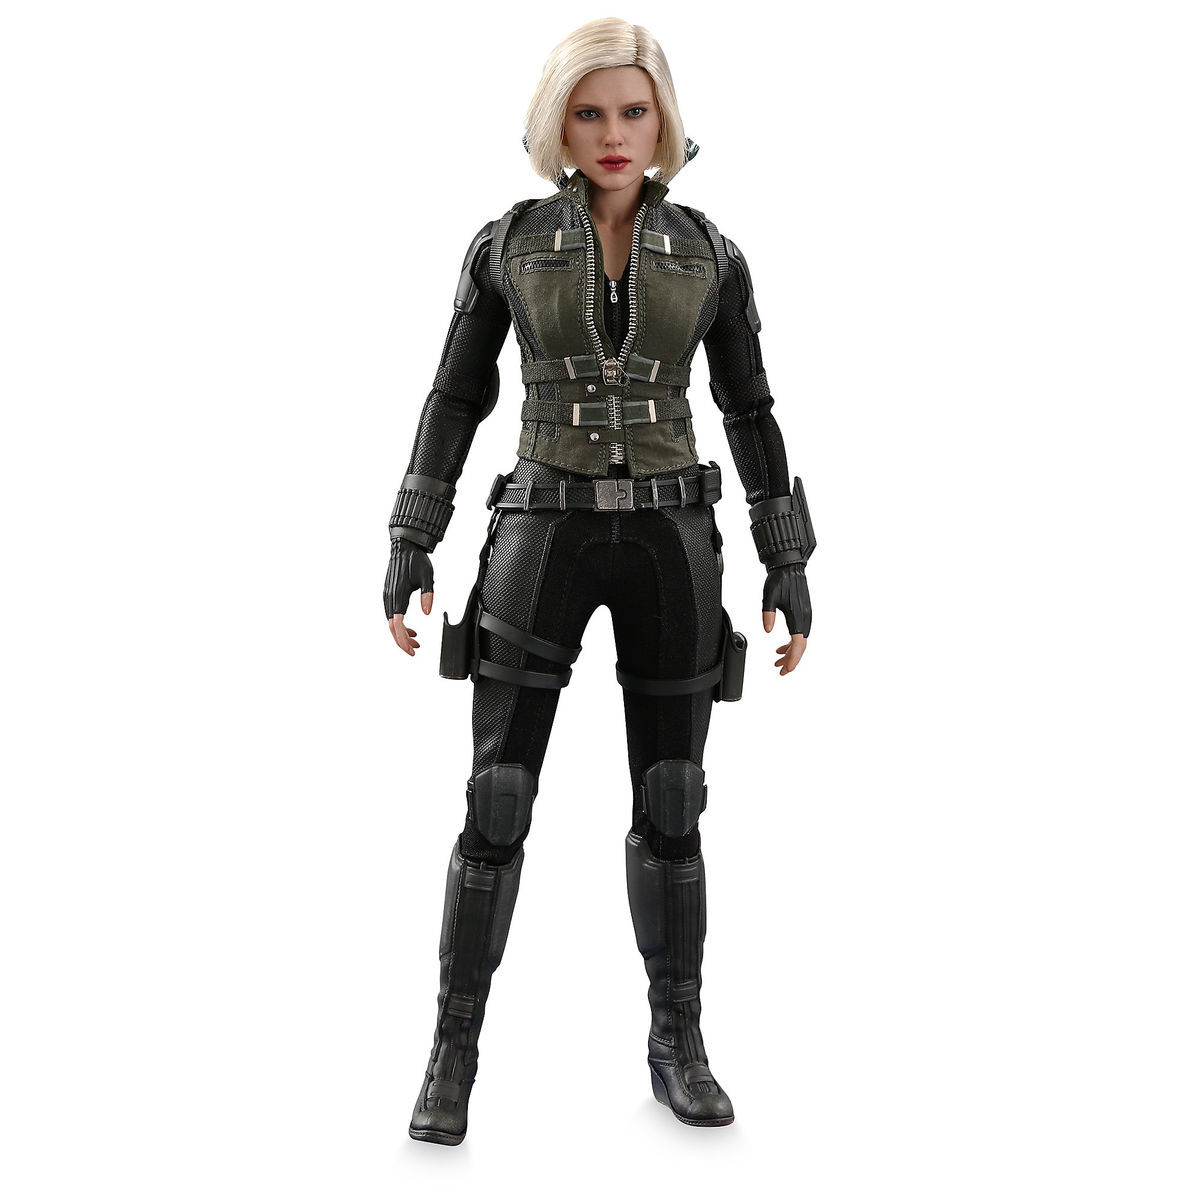 96c159ea3de Product Image of Black Widow Sixth Scale Figure by Hot Toys - Marvel s  Avengers  Infinity